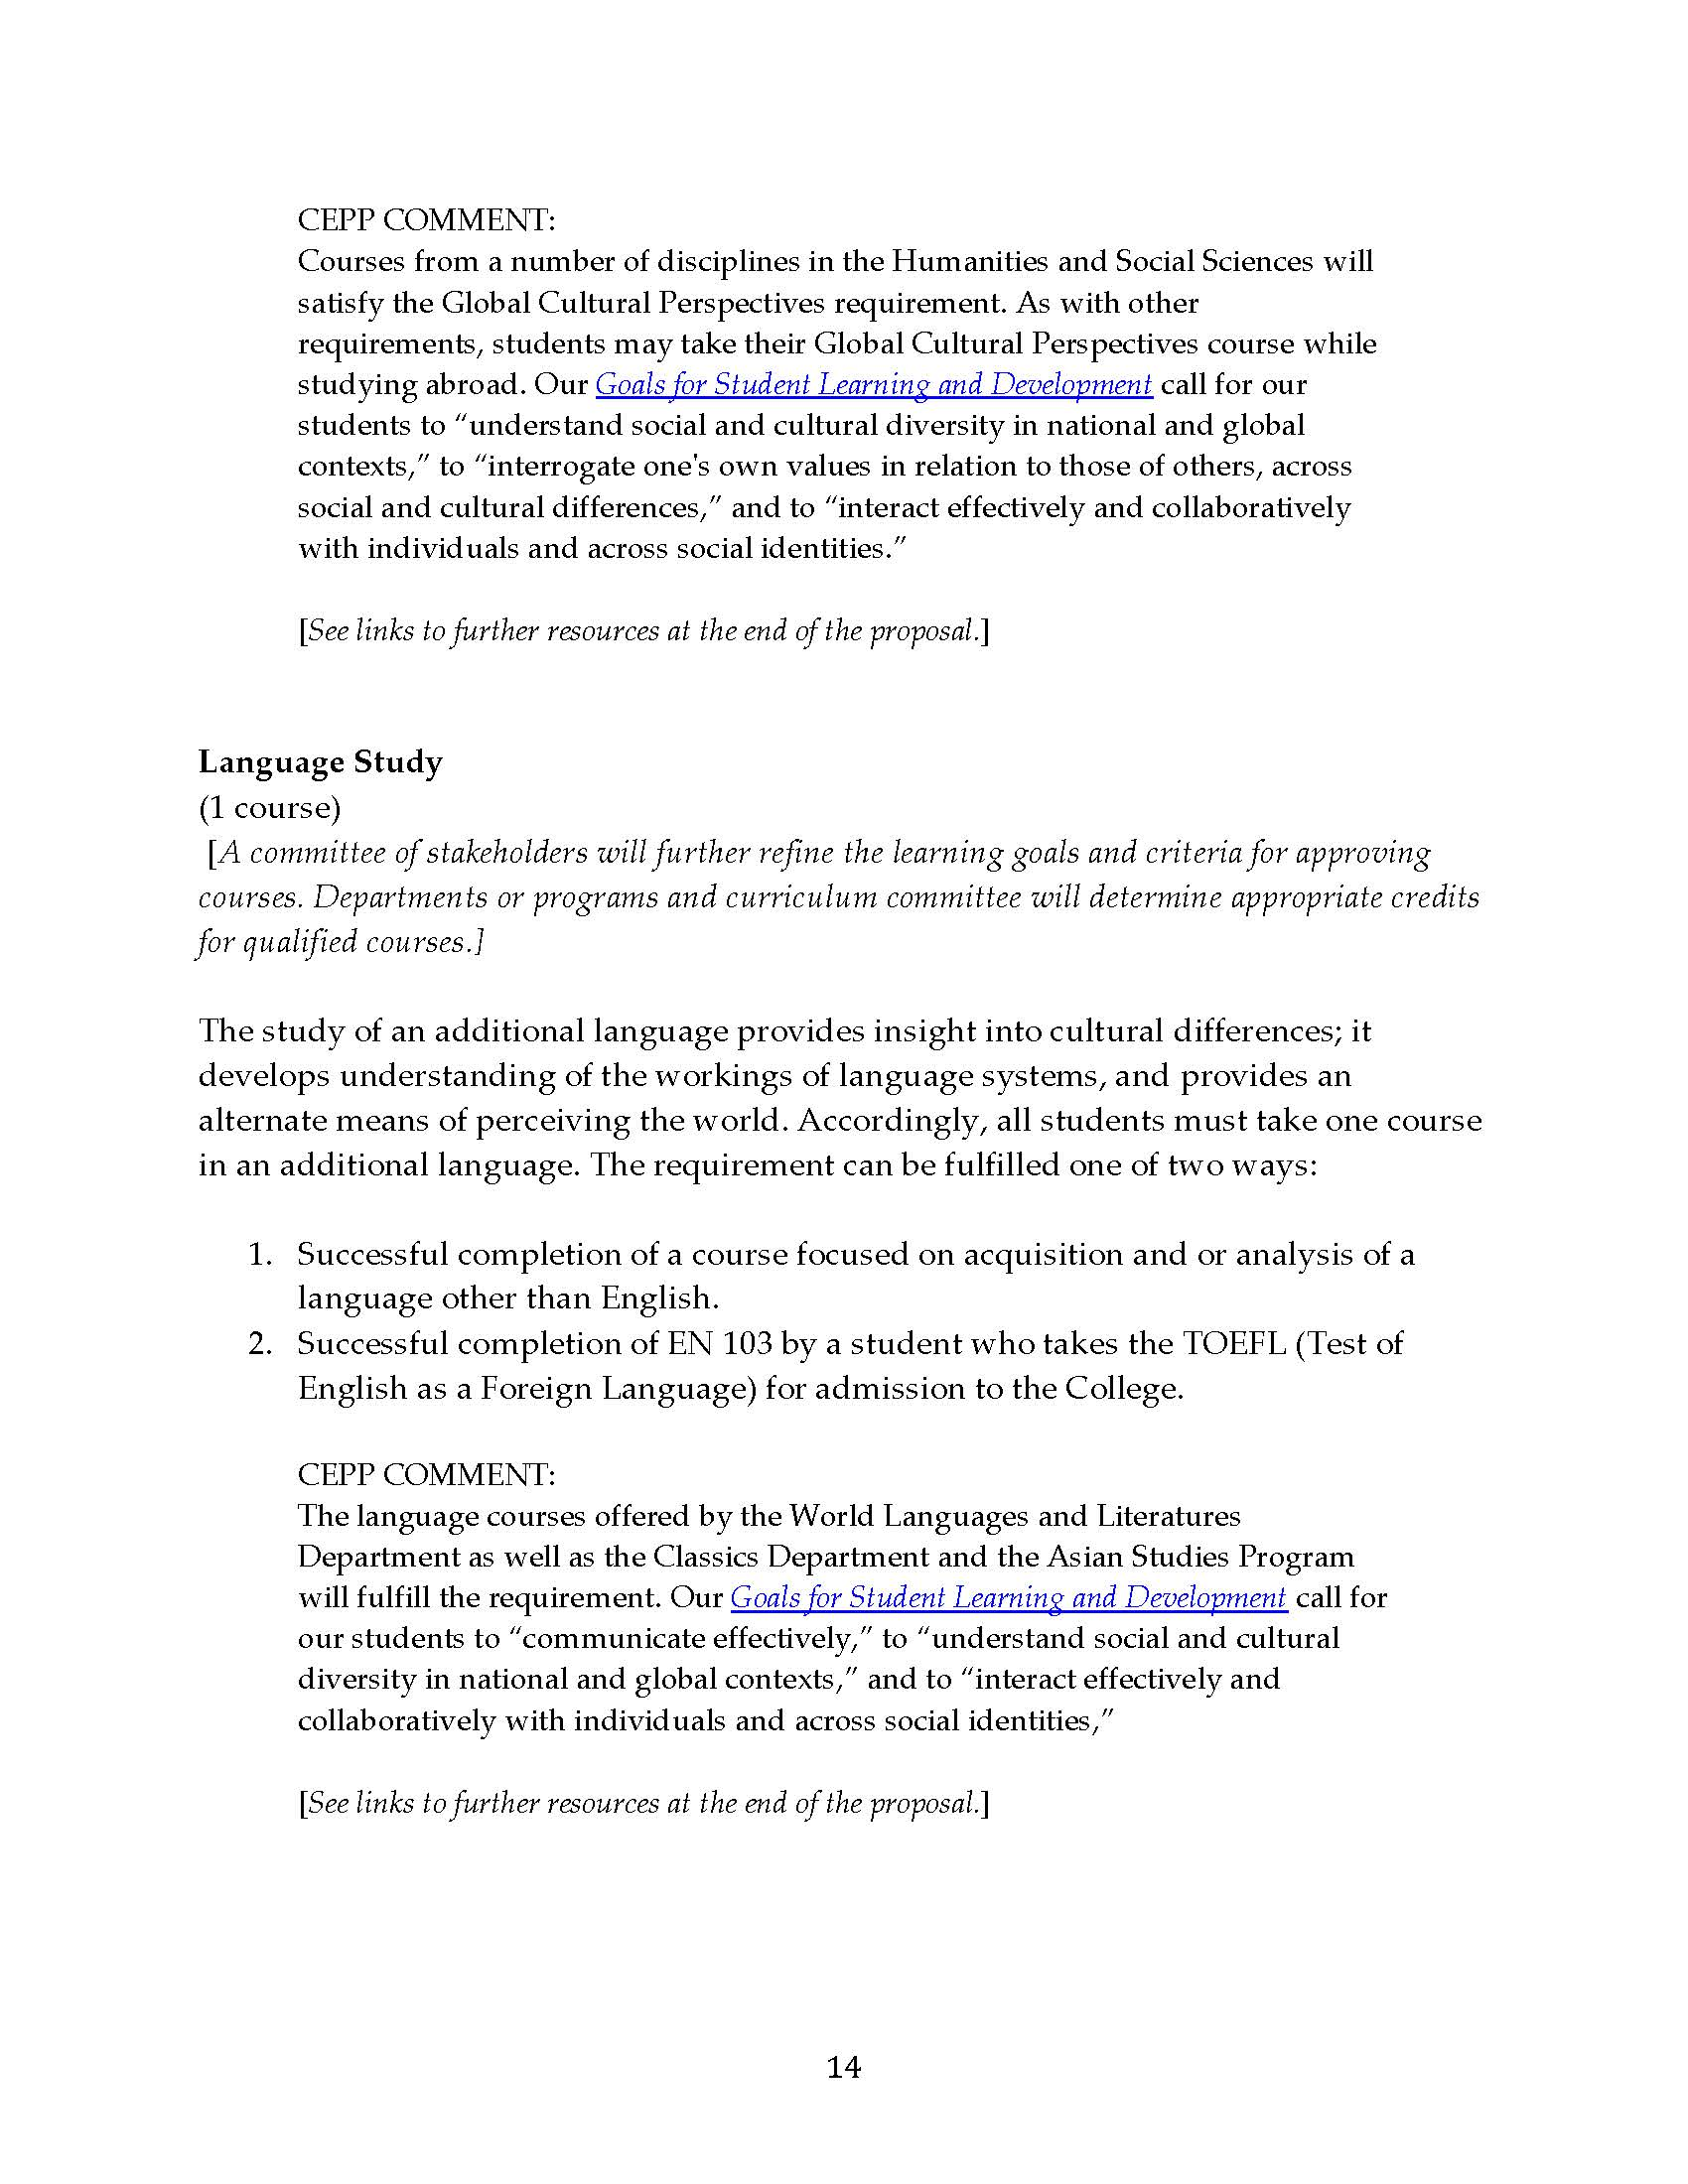 General Education Proposal February 28 2017_Page_14.jpg